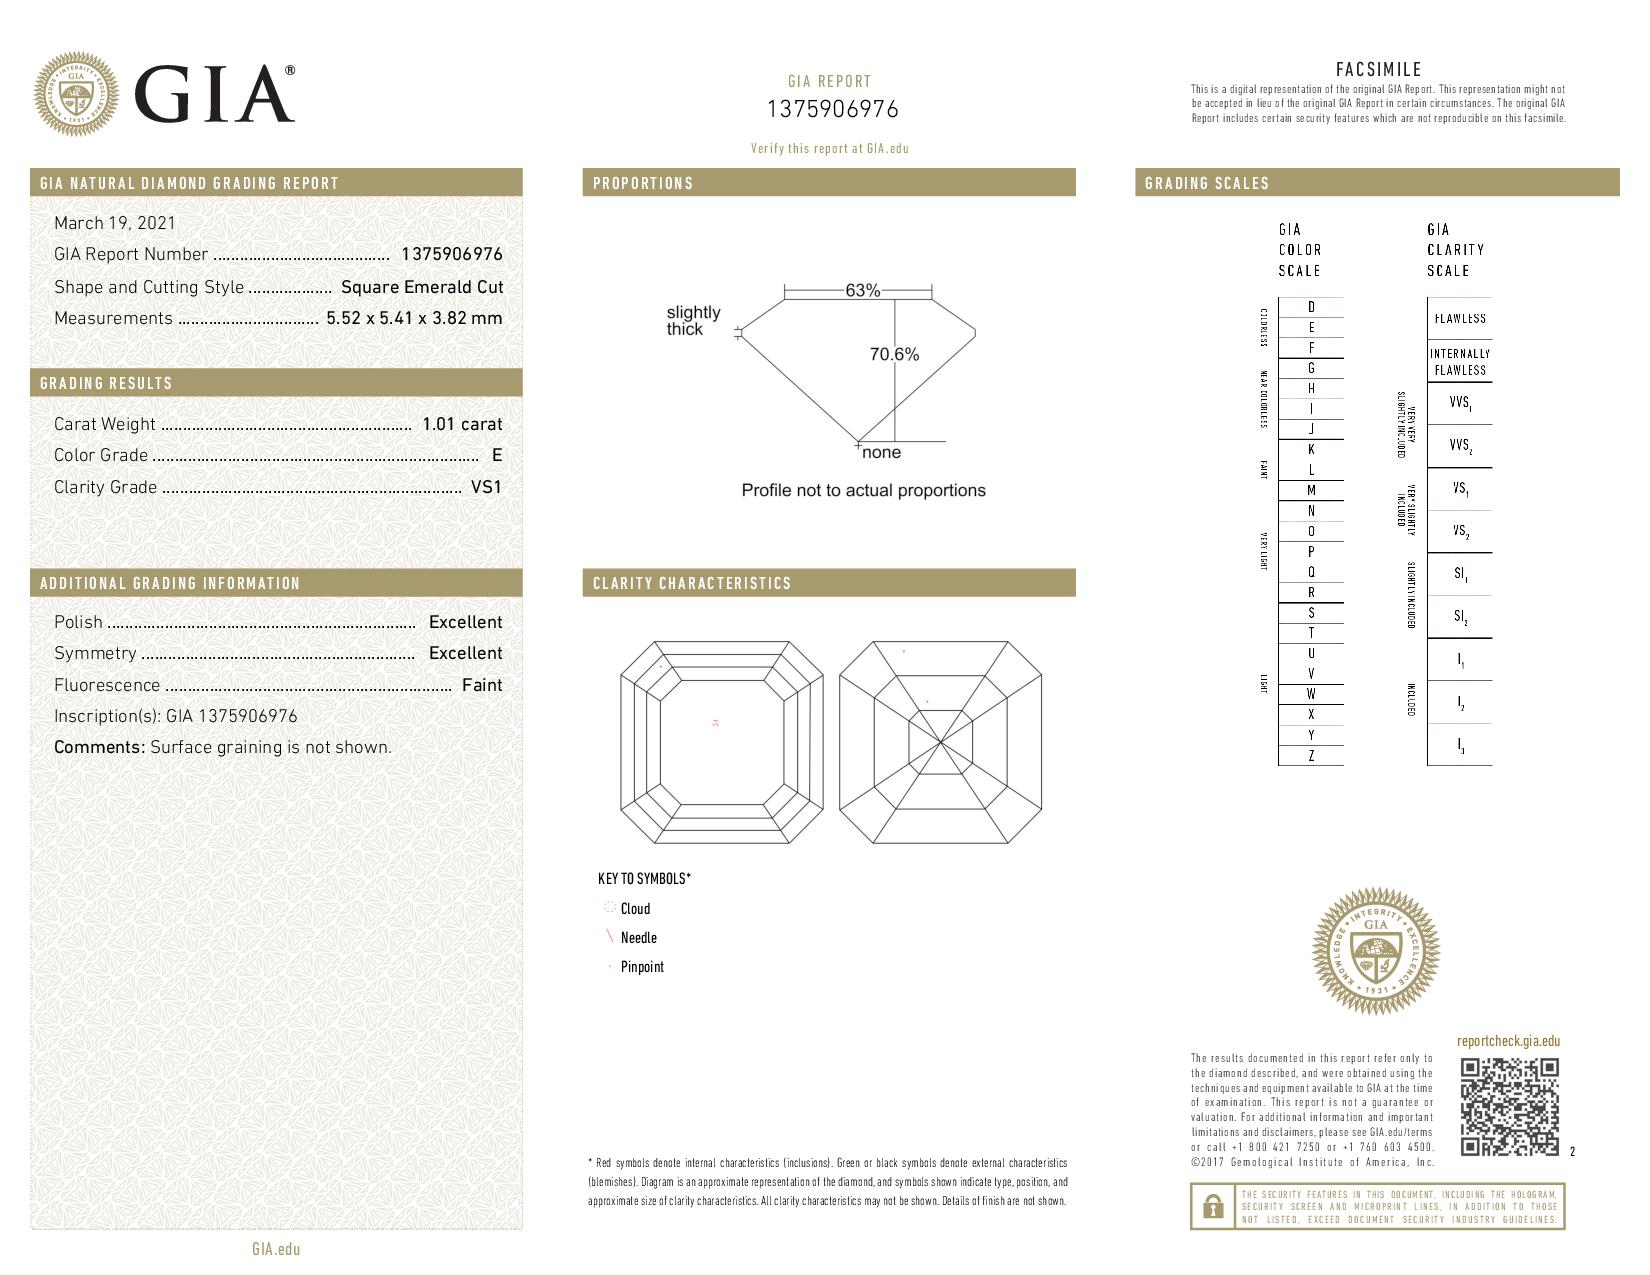 This is a 1.01 carat asscher shape, E color, VS1 clarity natural diamond accompanied by a GIA grading report.